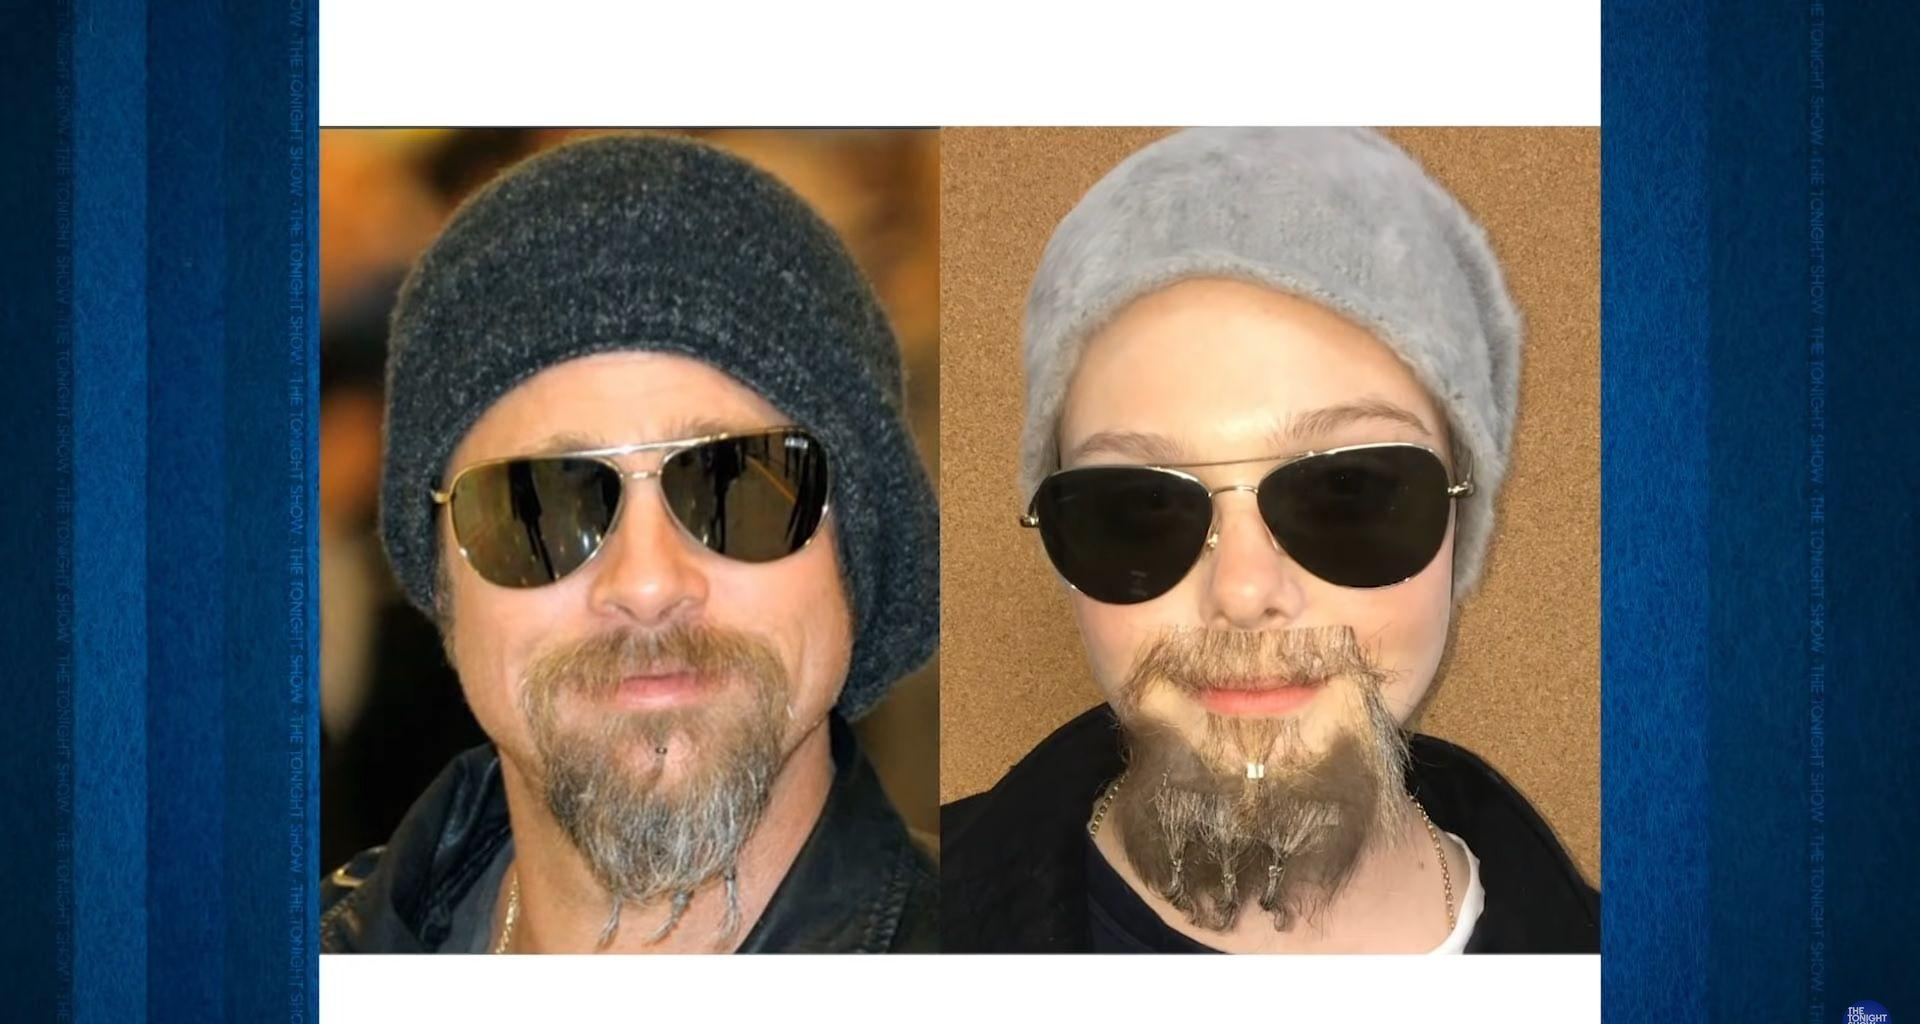 Elle Fanning Cosplays As Brad Pitt Back When He Rocked That Beaded Beard Look And The Resemblance Is Uncanny And Hilarious!